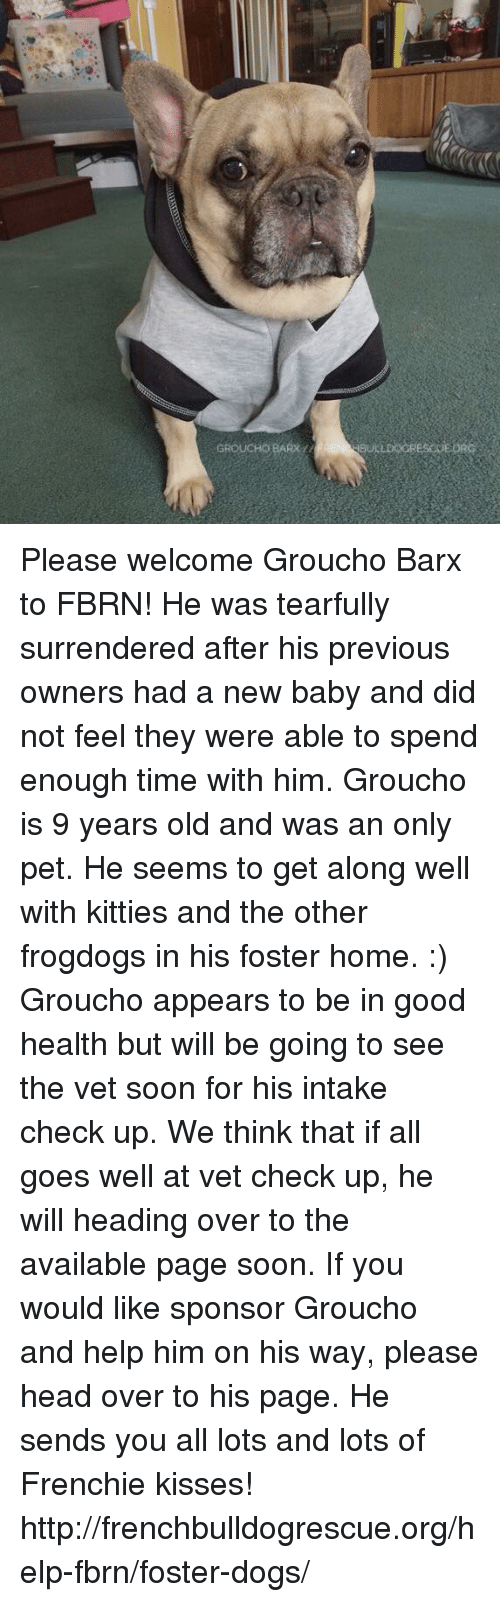 Memes, 🤖, and Fosters: GROUCHOBARx  BULLDOGRES GEORG Please welcome Groucho Barx to FBRN! He was tearfully surrendered after his previous owners had a new baby and did not feel they were able to spend enough time with him.   Groucho is 9 years old and was an only pet. He seems to get along well with kitties and the other frogdogs in his foster home. :)  Groucho appears to be in good health but will be going to see the vet soon for his intake check up. We think that if all goes well at vet check up, he will heading over to the available page soon. If you would like sponsor Groucho and help him on his way, please head over to his page. He sends you all lots and lots of Frenchie kisses!  http://frenchbulldogrescue.org/help-fbrn/foster-dogs/